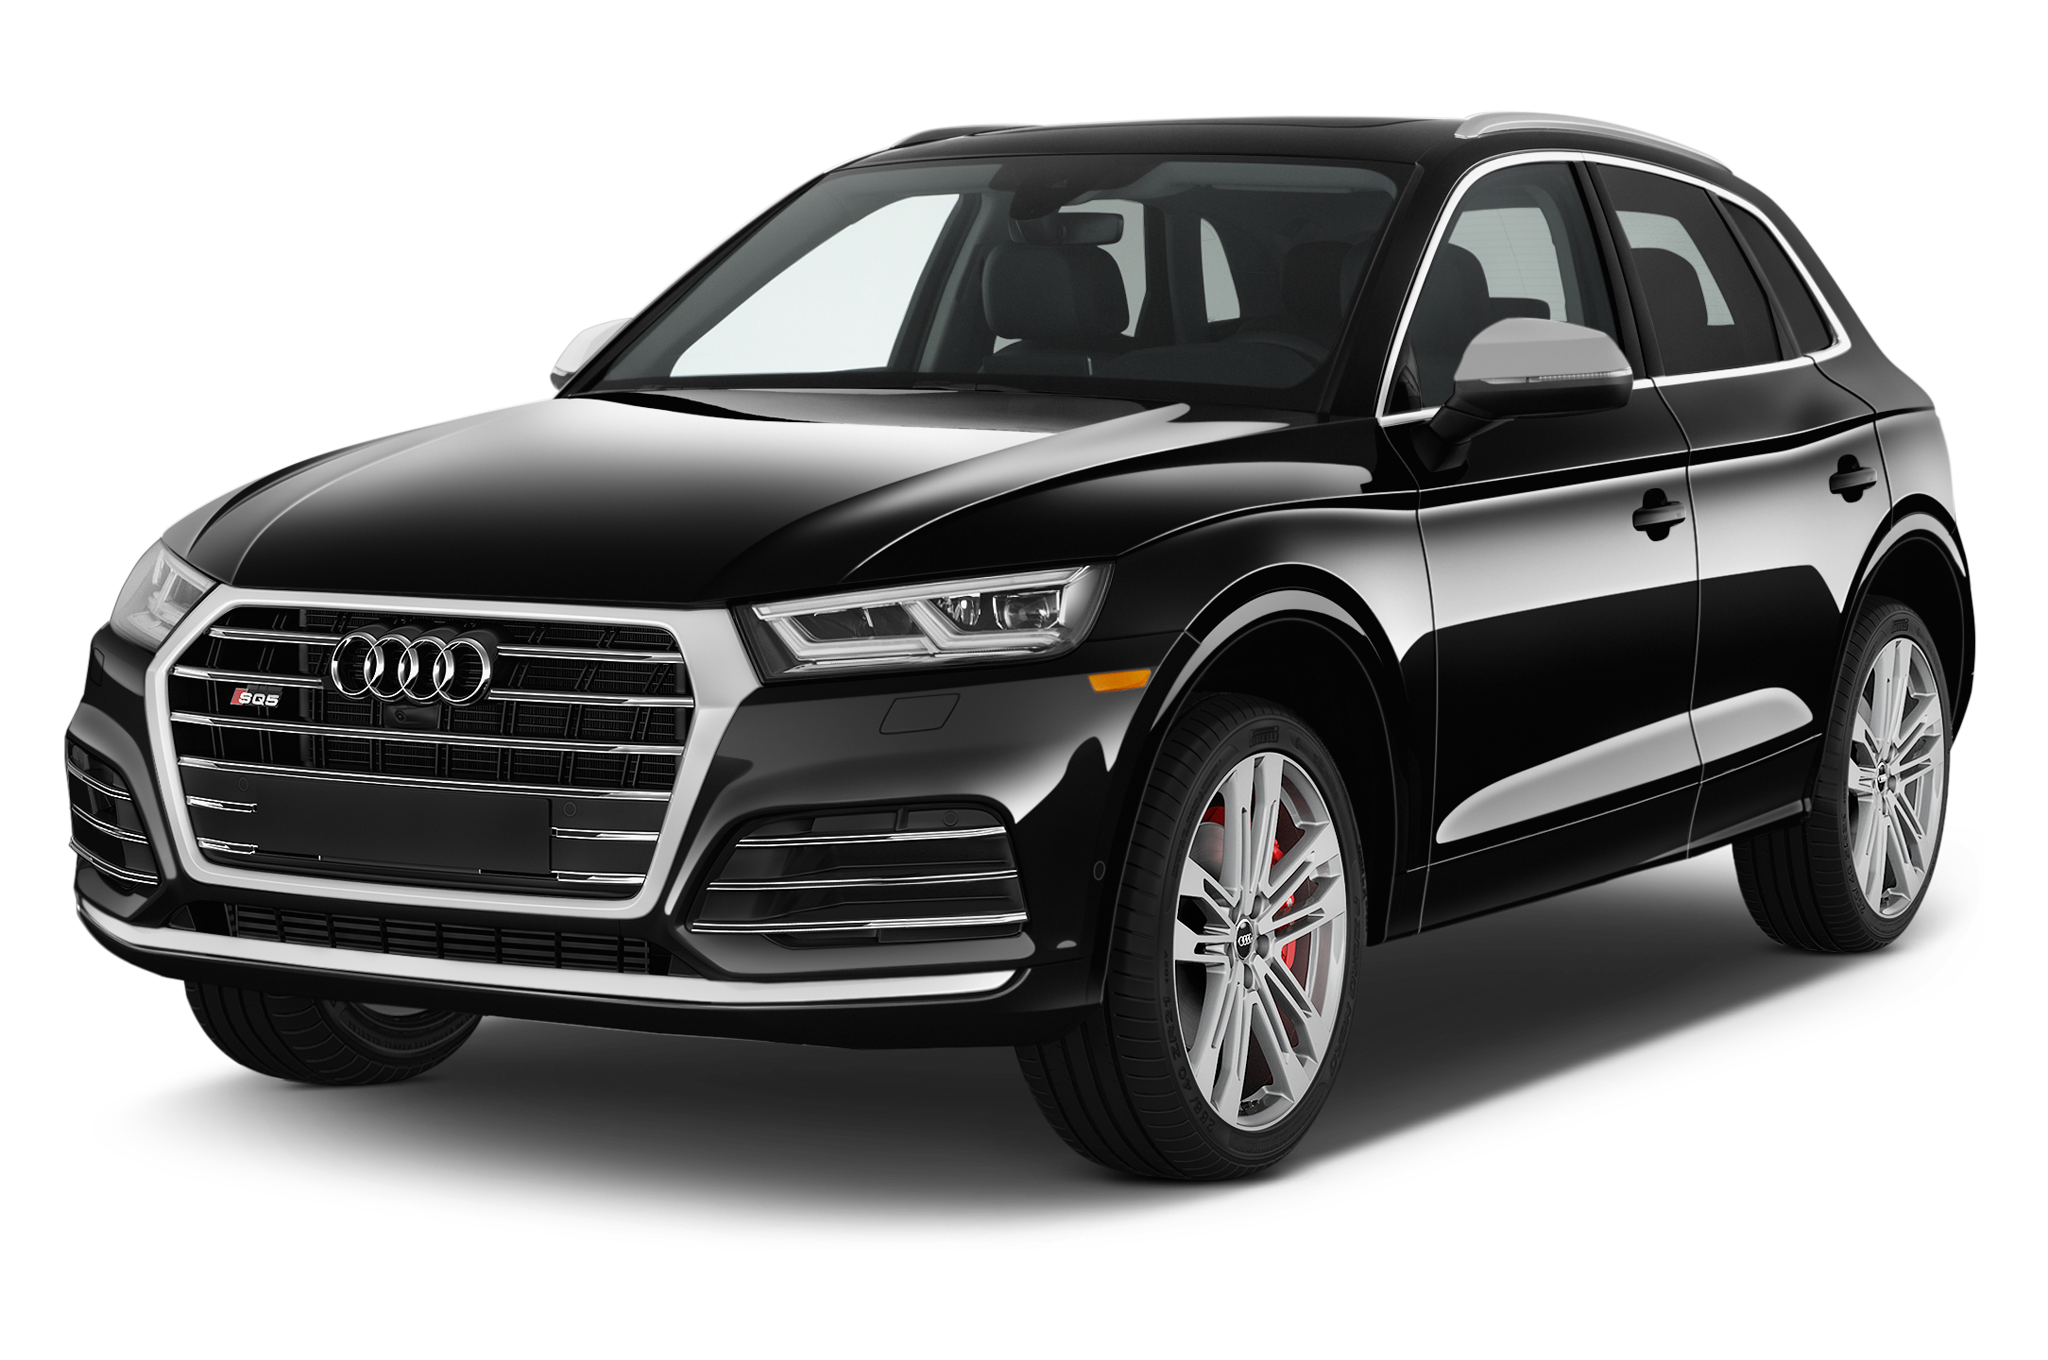 2018 audi sq5 overview msn autos. Black Bedroom Furniture Sets. Home Design Ideas